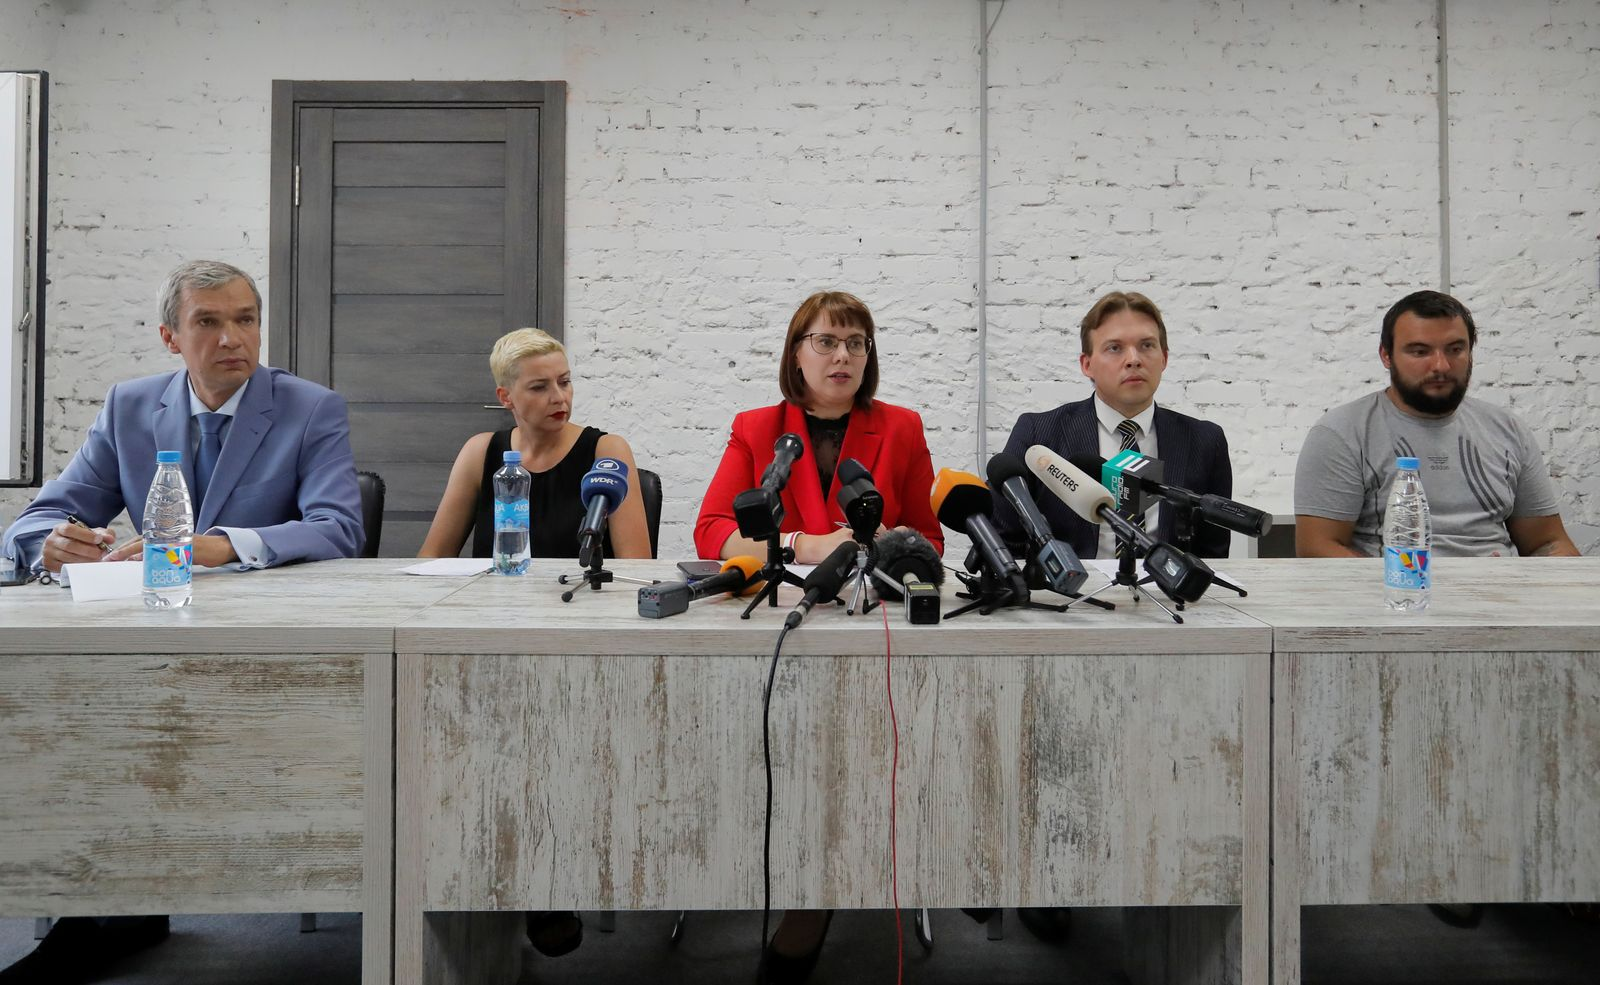 Representatives of the Coordination Council for members of the Belarusian opposition attend a news conference in Minsk